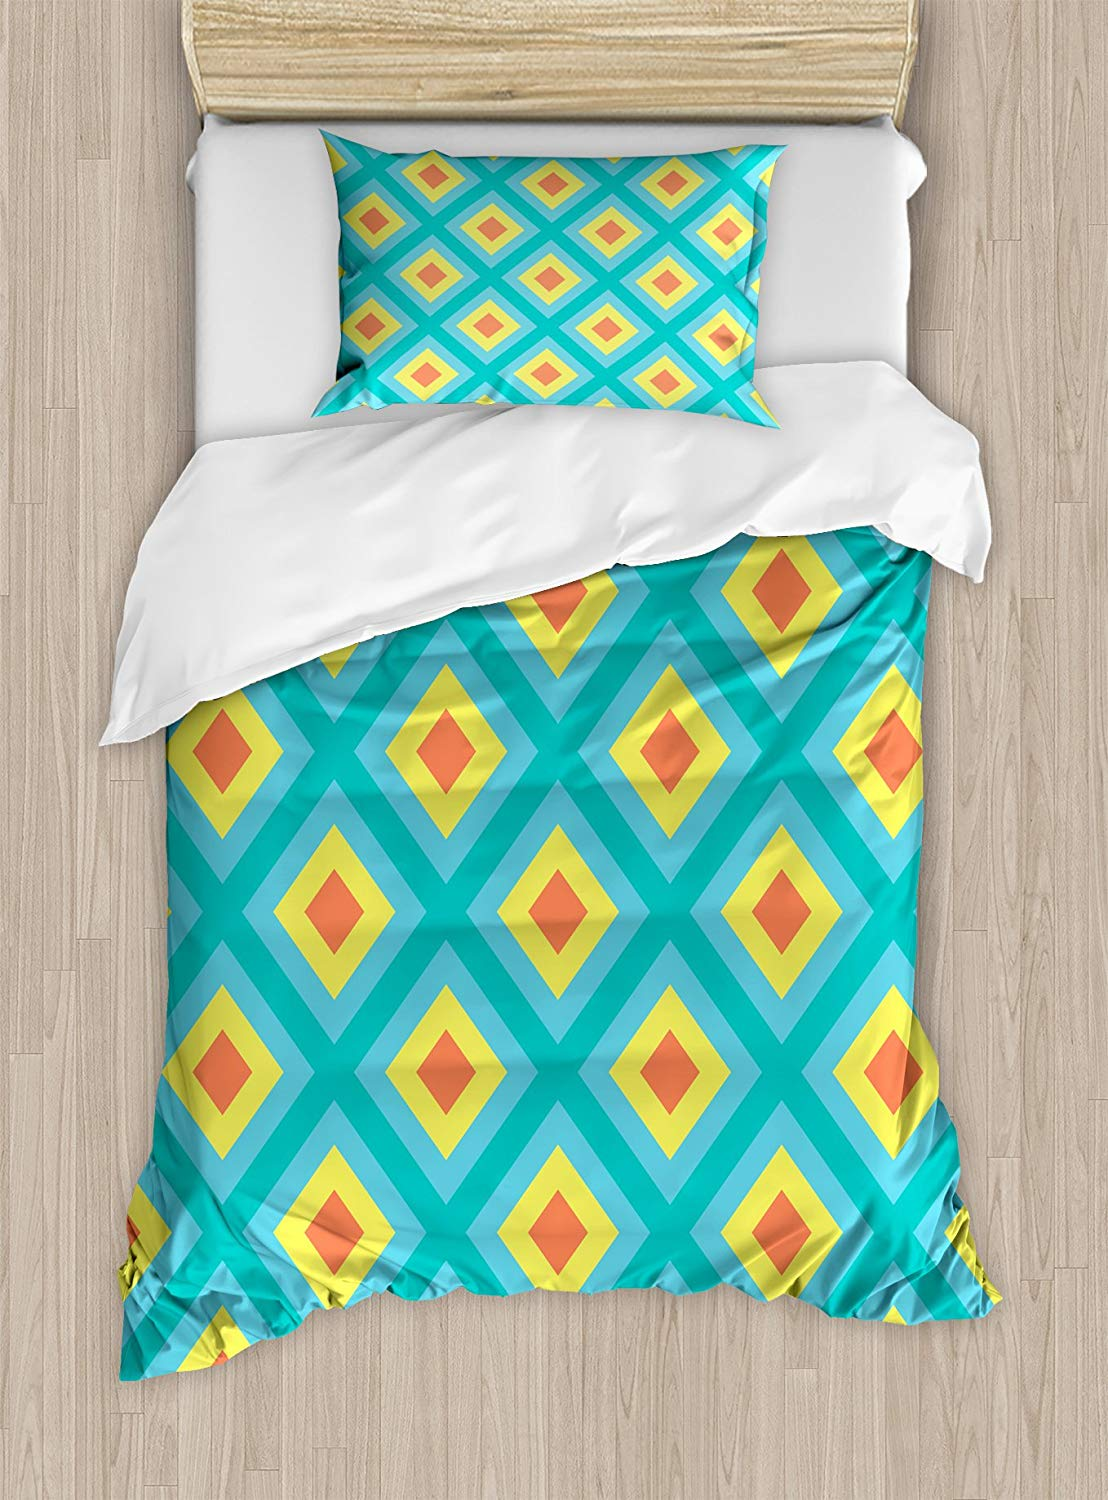 Yellow and Blue Duvet Cover Set Pattern with Nested Squares Geometric Retro Rhombus Mosaic, Decorative 3 Piece Bedding SetYellow and Blue Duvet Cover Set Pattern with Nested Squares Geometric Retro Rhombus Mosaic, Decorative 3 Piece Bedding Set